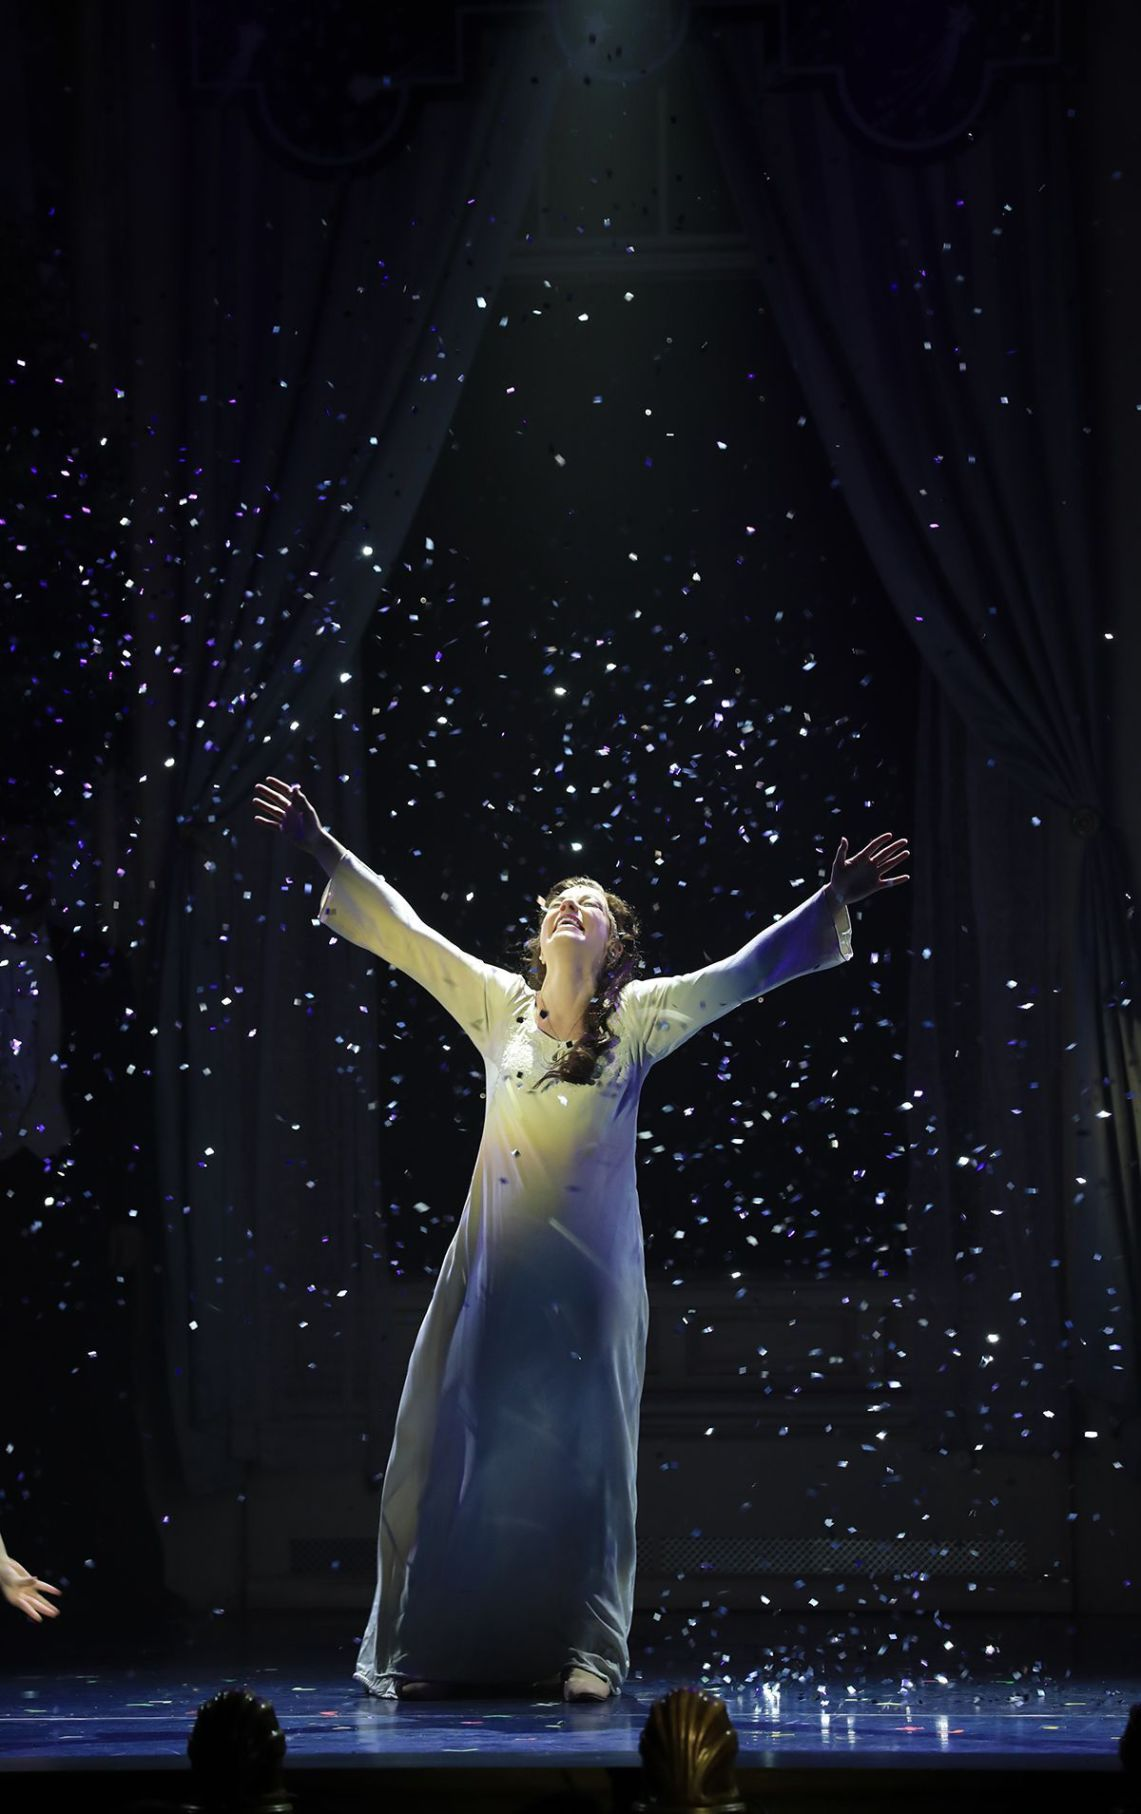 'Finding Neverland' - A timeless story about the power of imagination